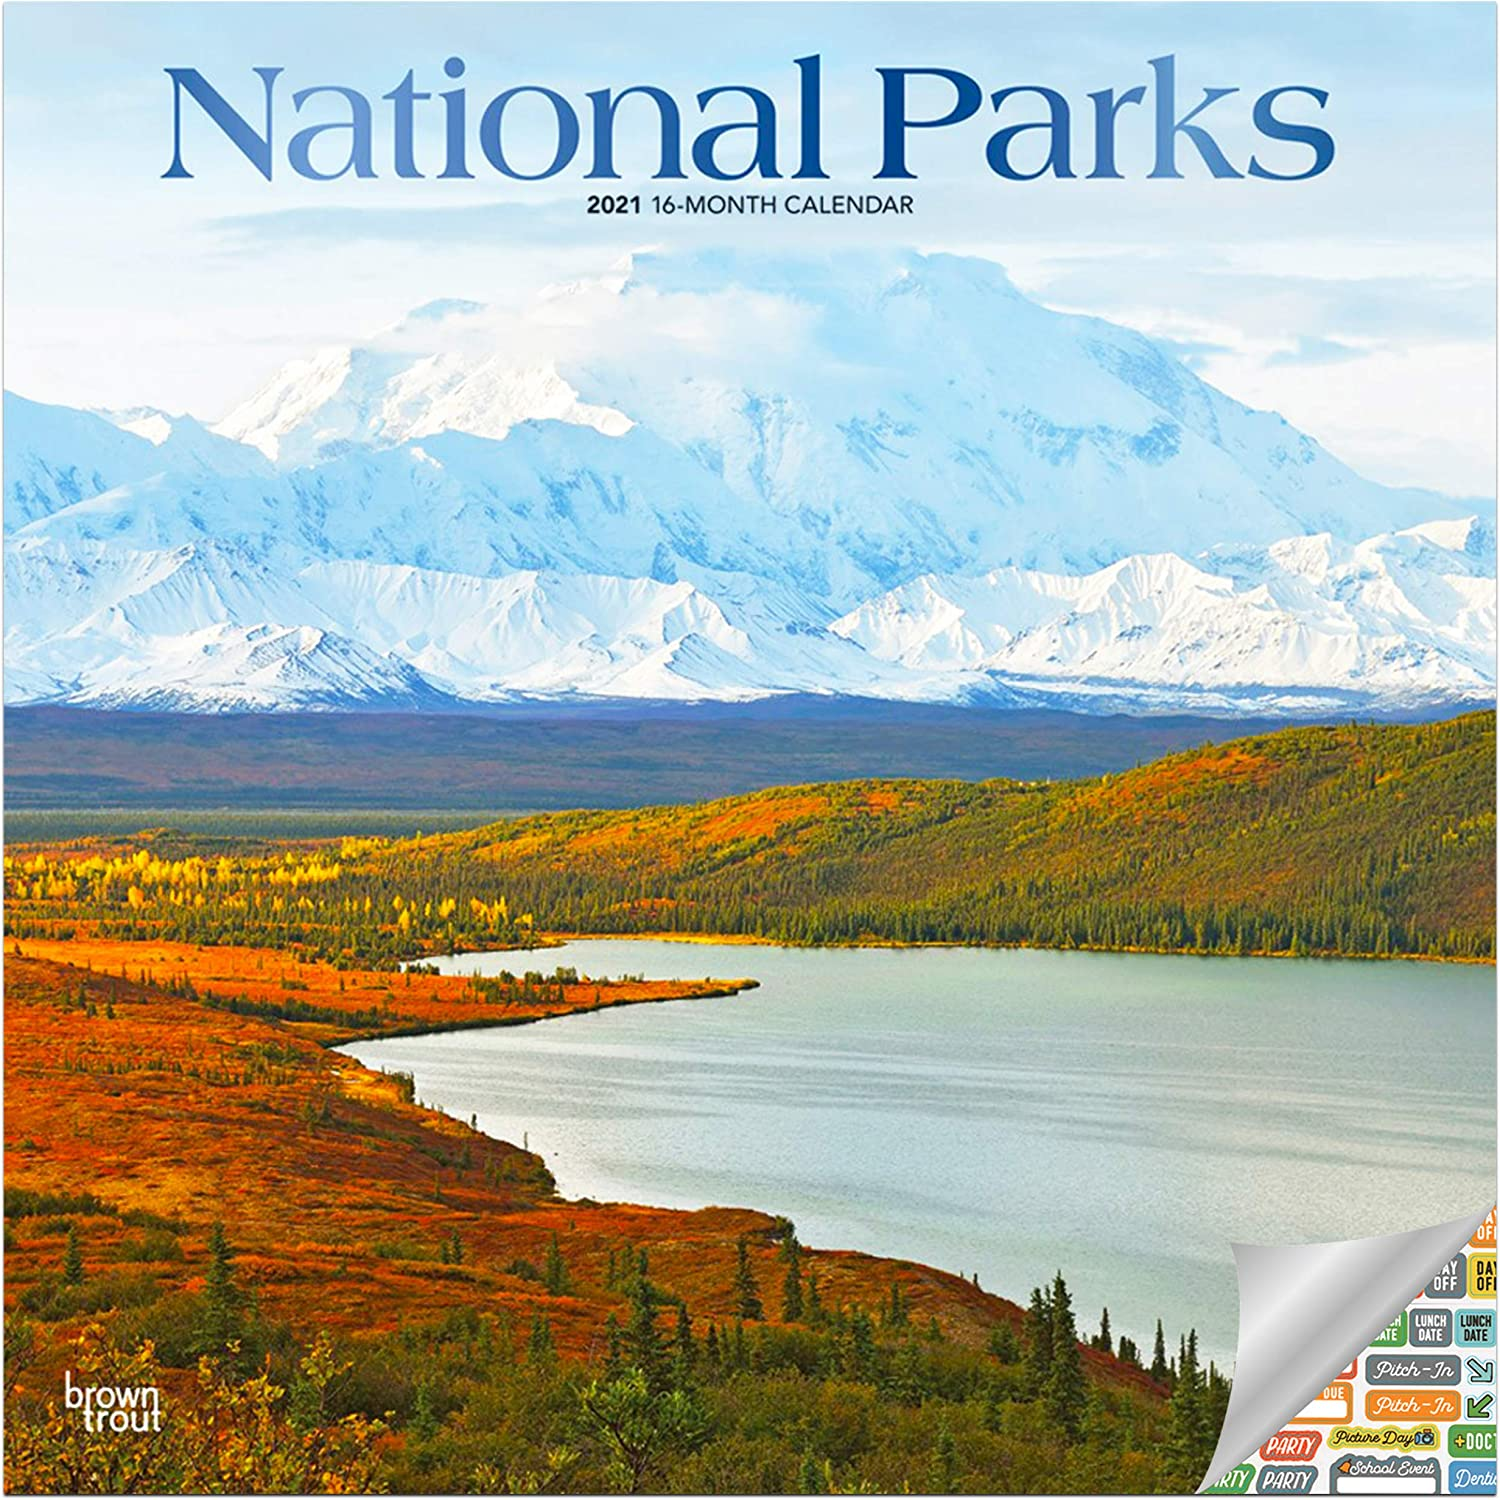 National Parks Calendar 2021 Bundle - Deluxe 2021 National Parks Wall Calendar with Over 100 Calendar Stickers (National Parks Gifts, Office Supplies)